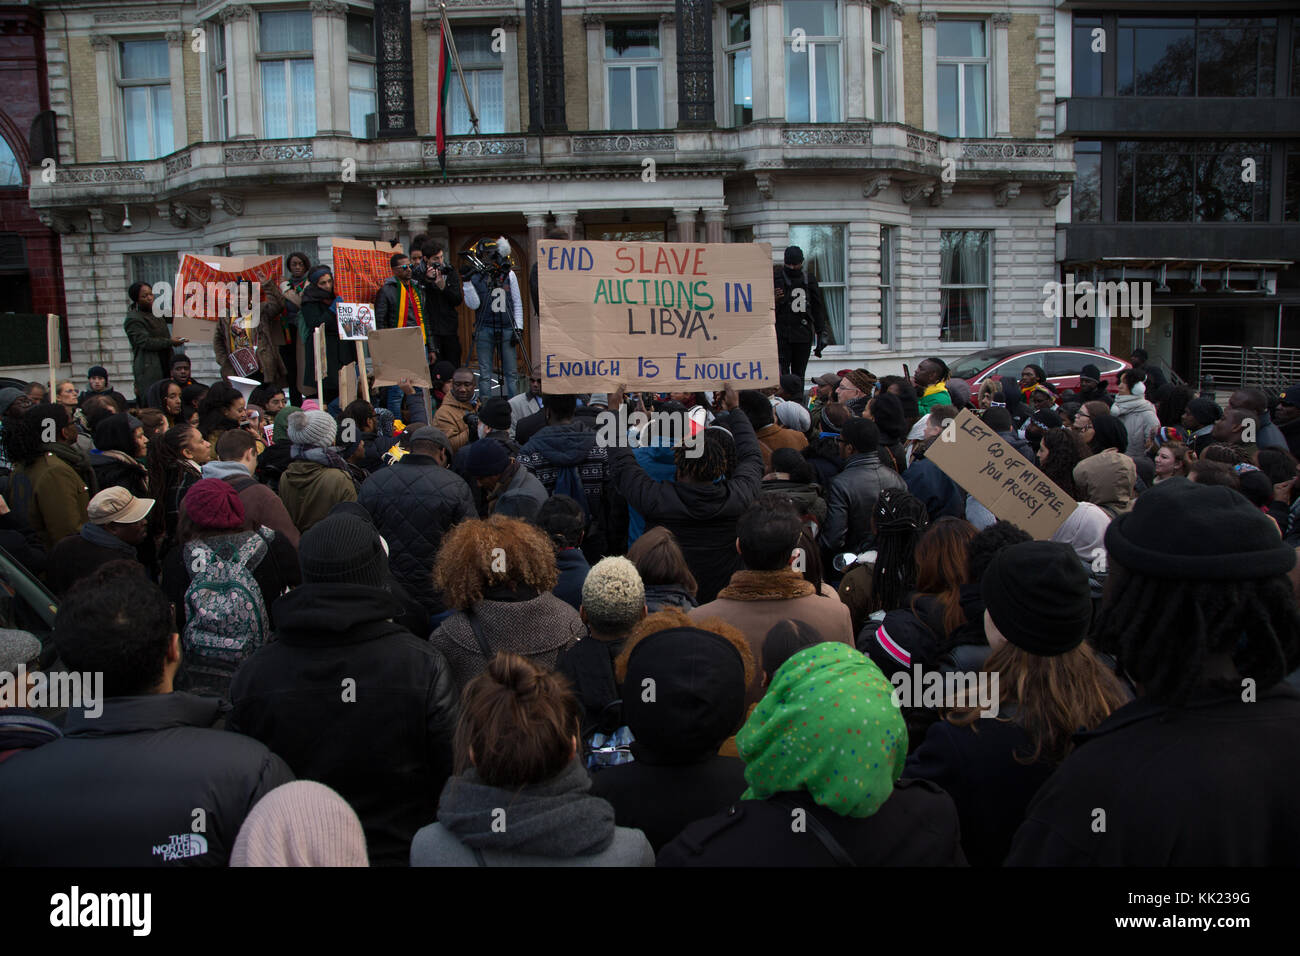 London UK 26th November 2017 Protesters outside the Libyan Embassy in London following reports into migrant slave - Stock Image